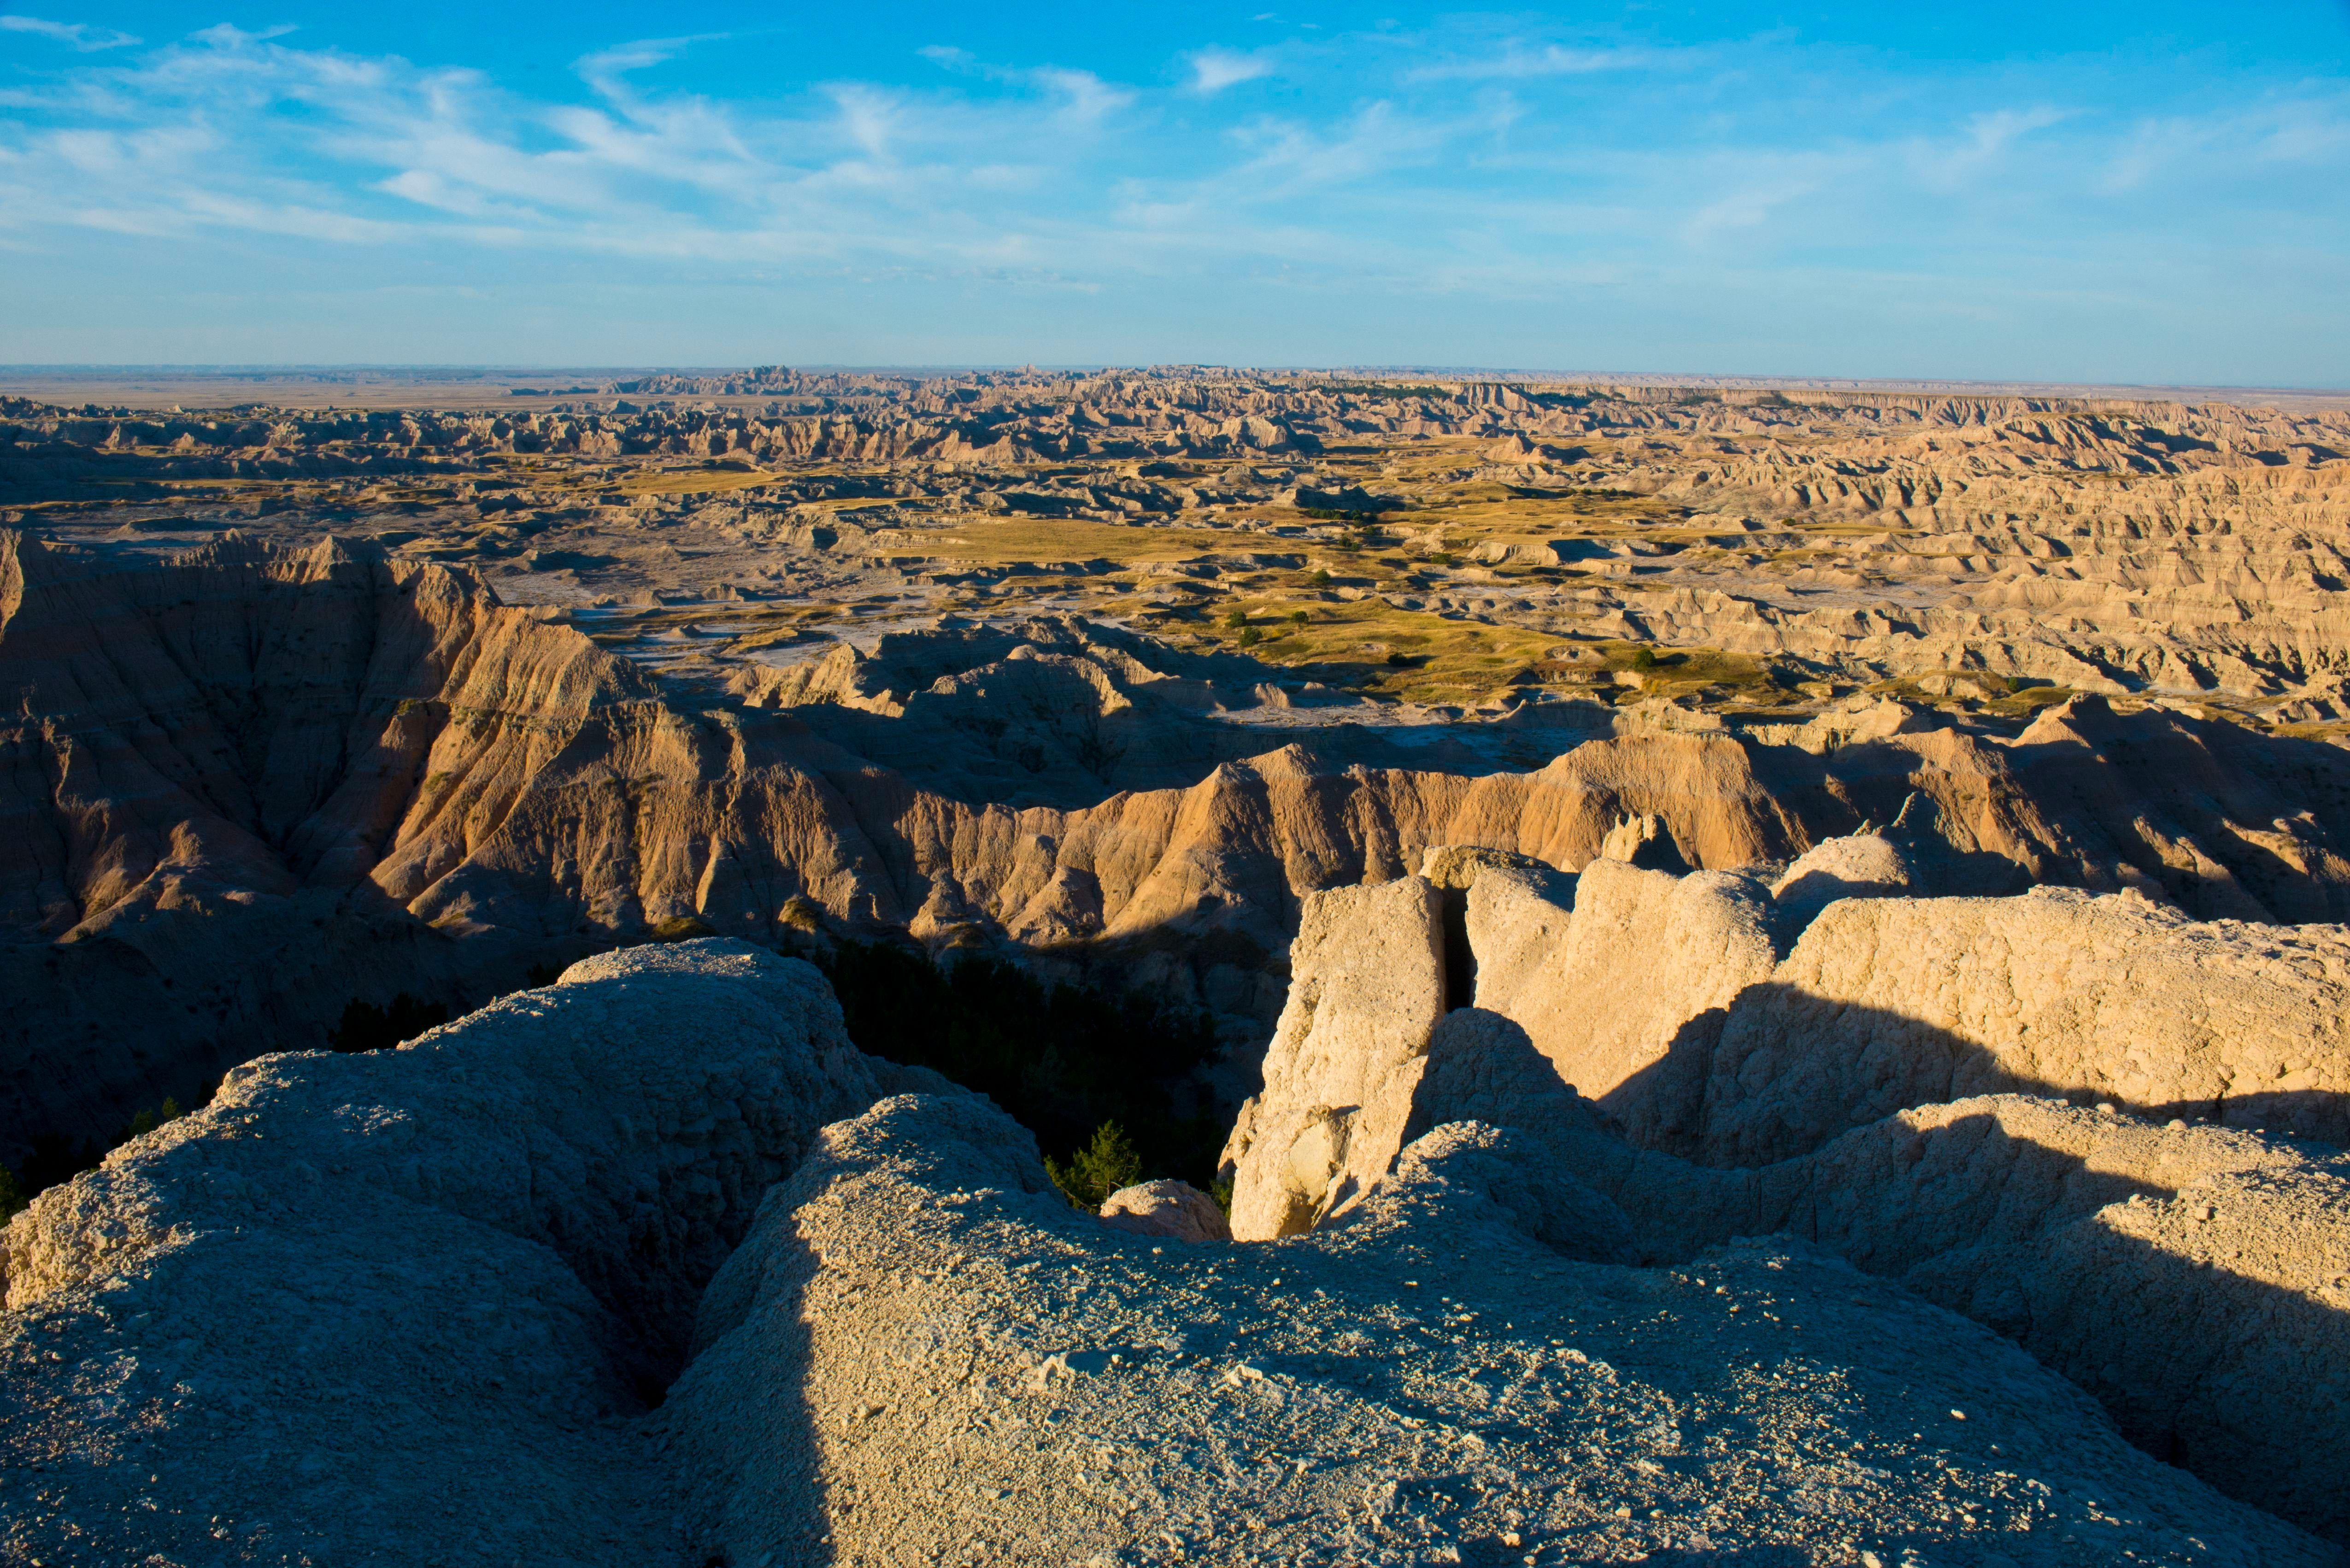 North America, USA, South Dakota, Wall, Badlands National Park, Loop Road, Pinnacles Overlook. (Photo by:  Education Images/UIG via Getty Images)